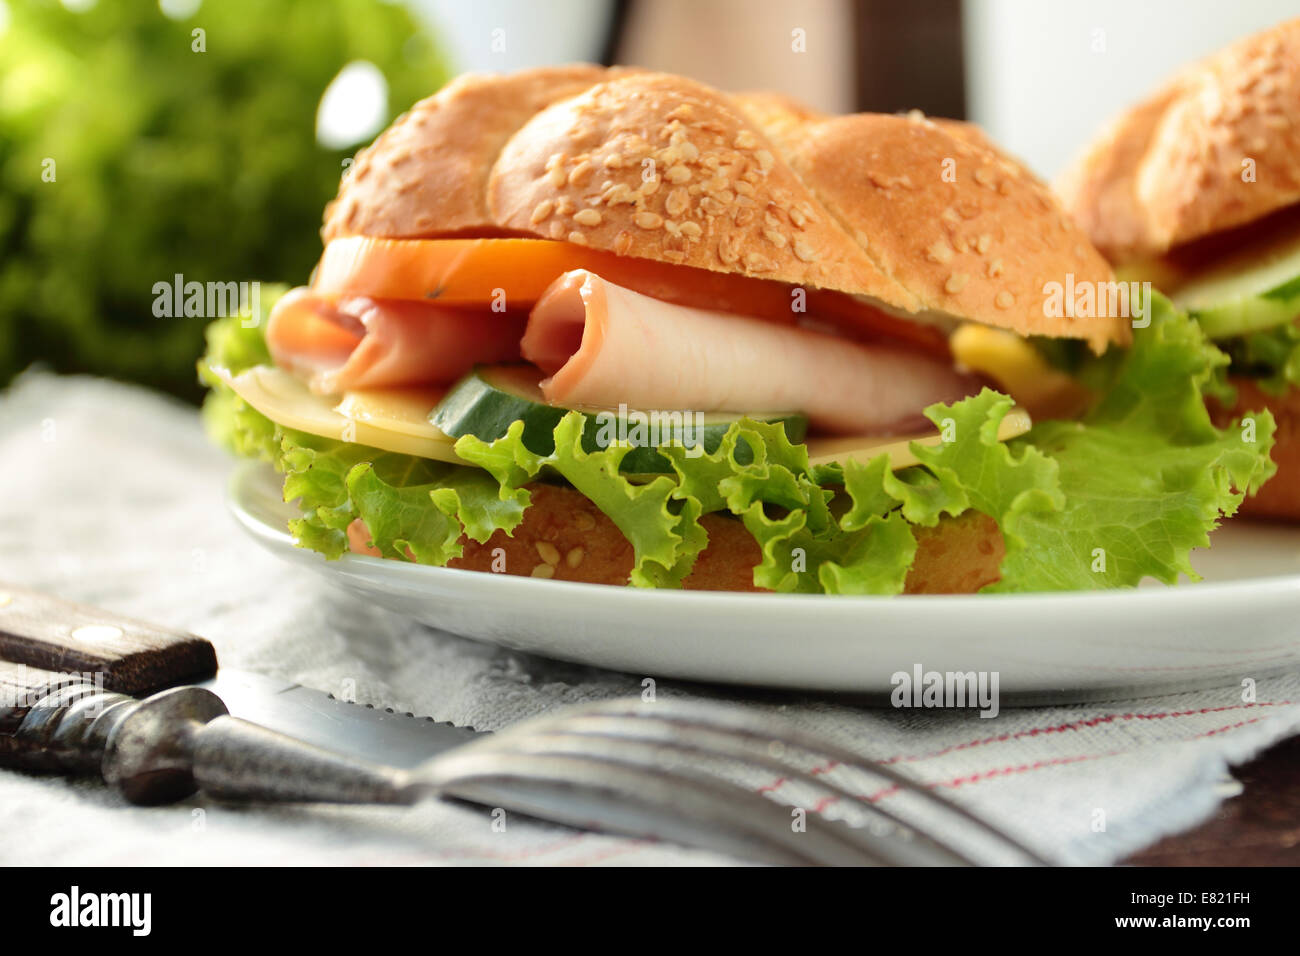 Sandwich with fresh lettuce, tomato, ham and cheese - Stock Image